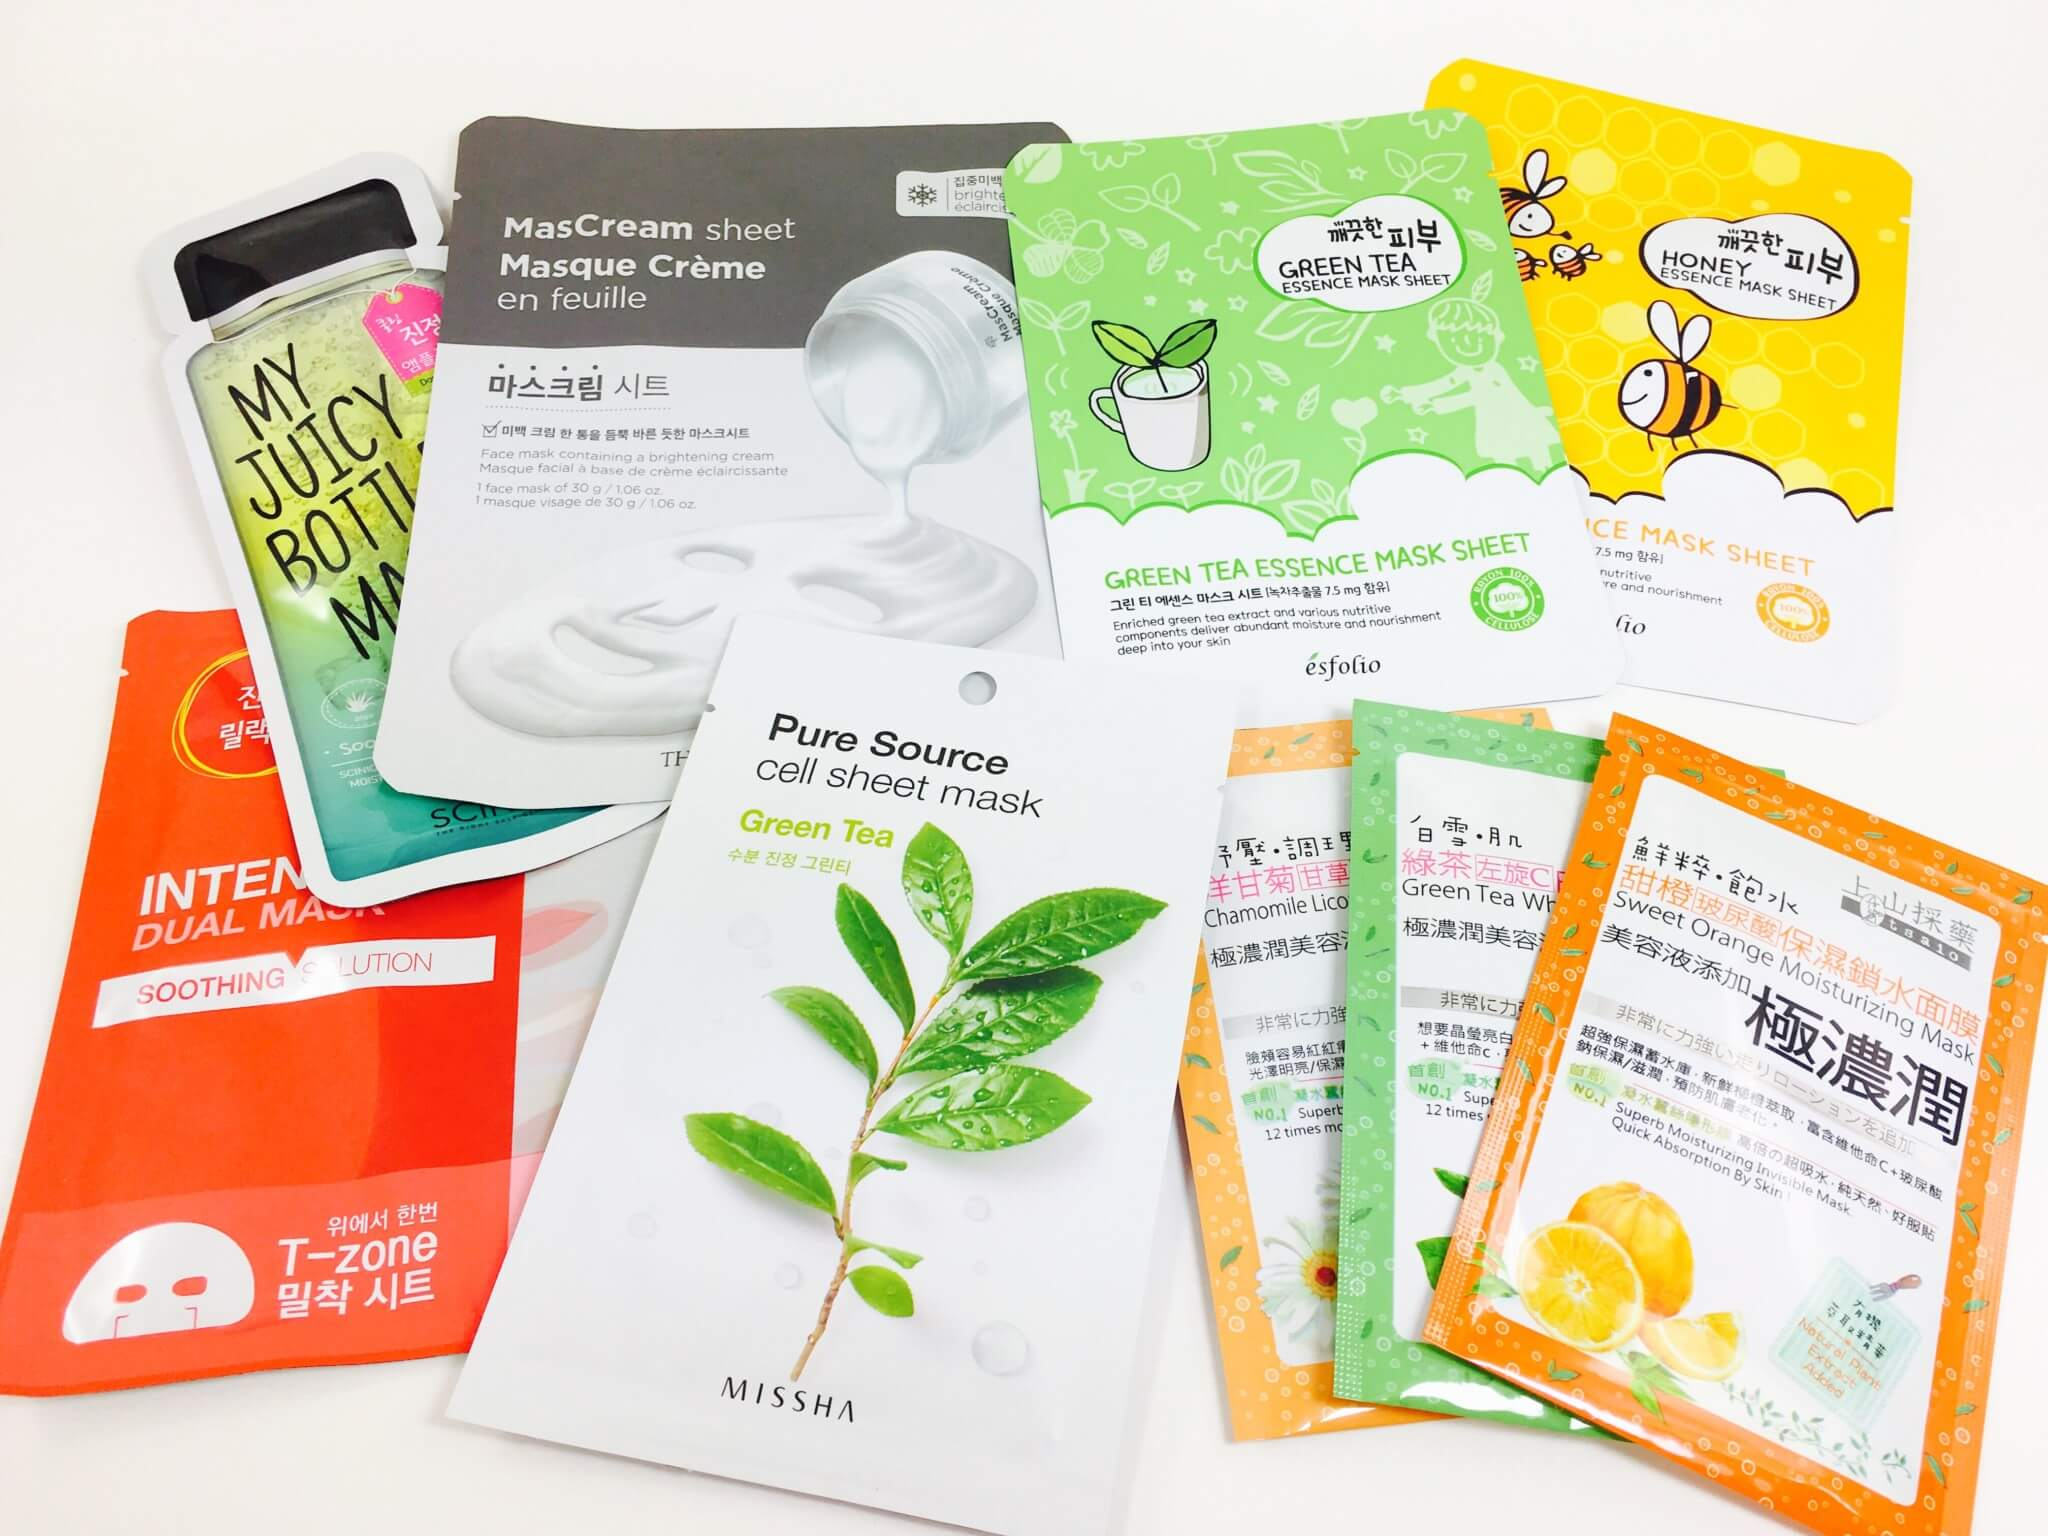 July 2016 Beauteque Mask Maven Subscription Review + Coupon